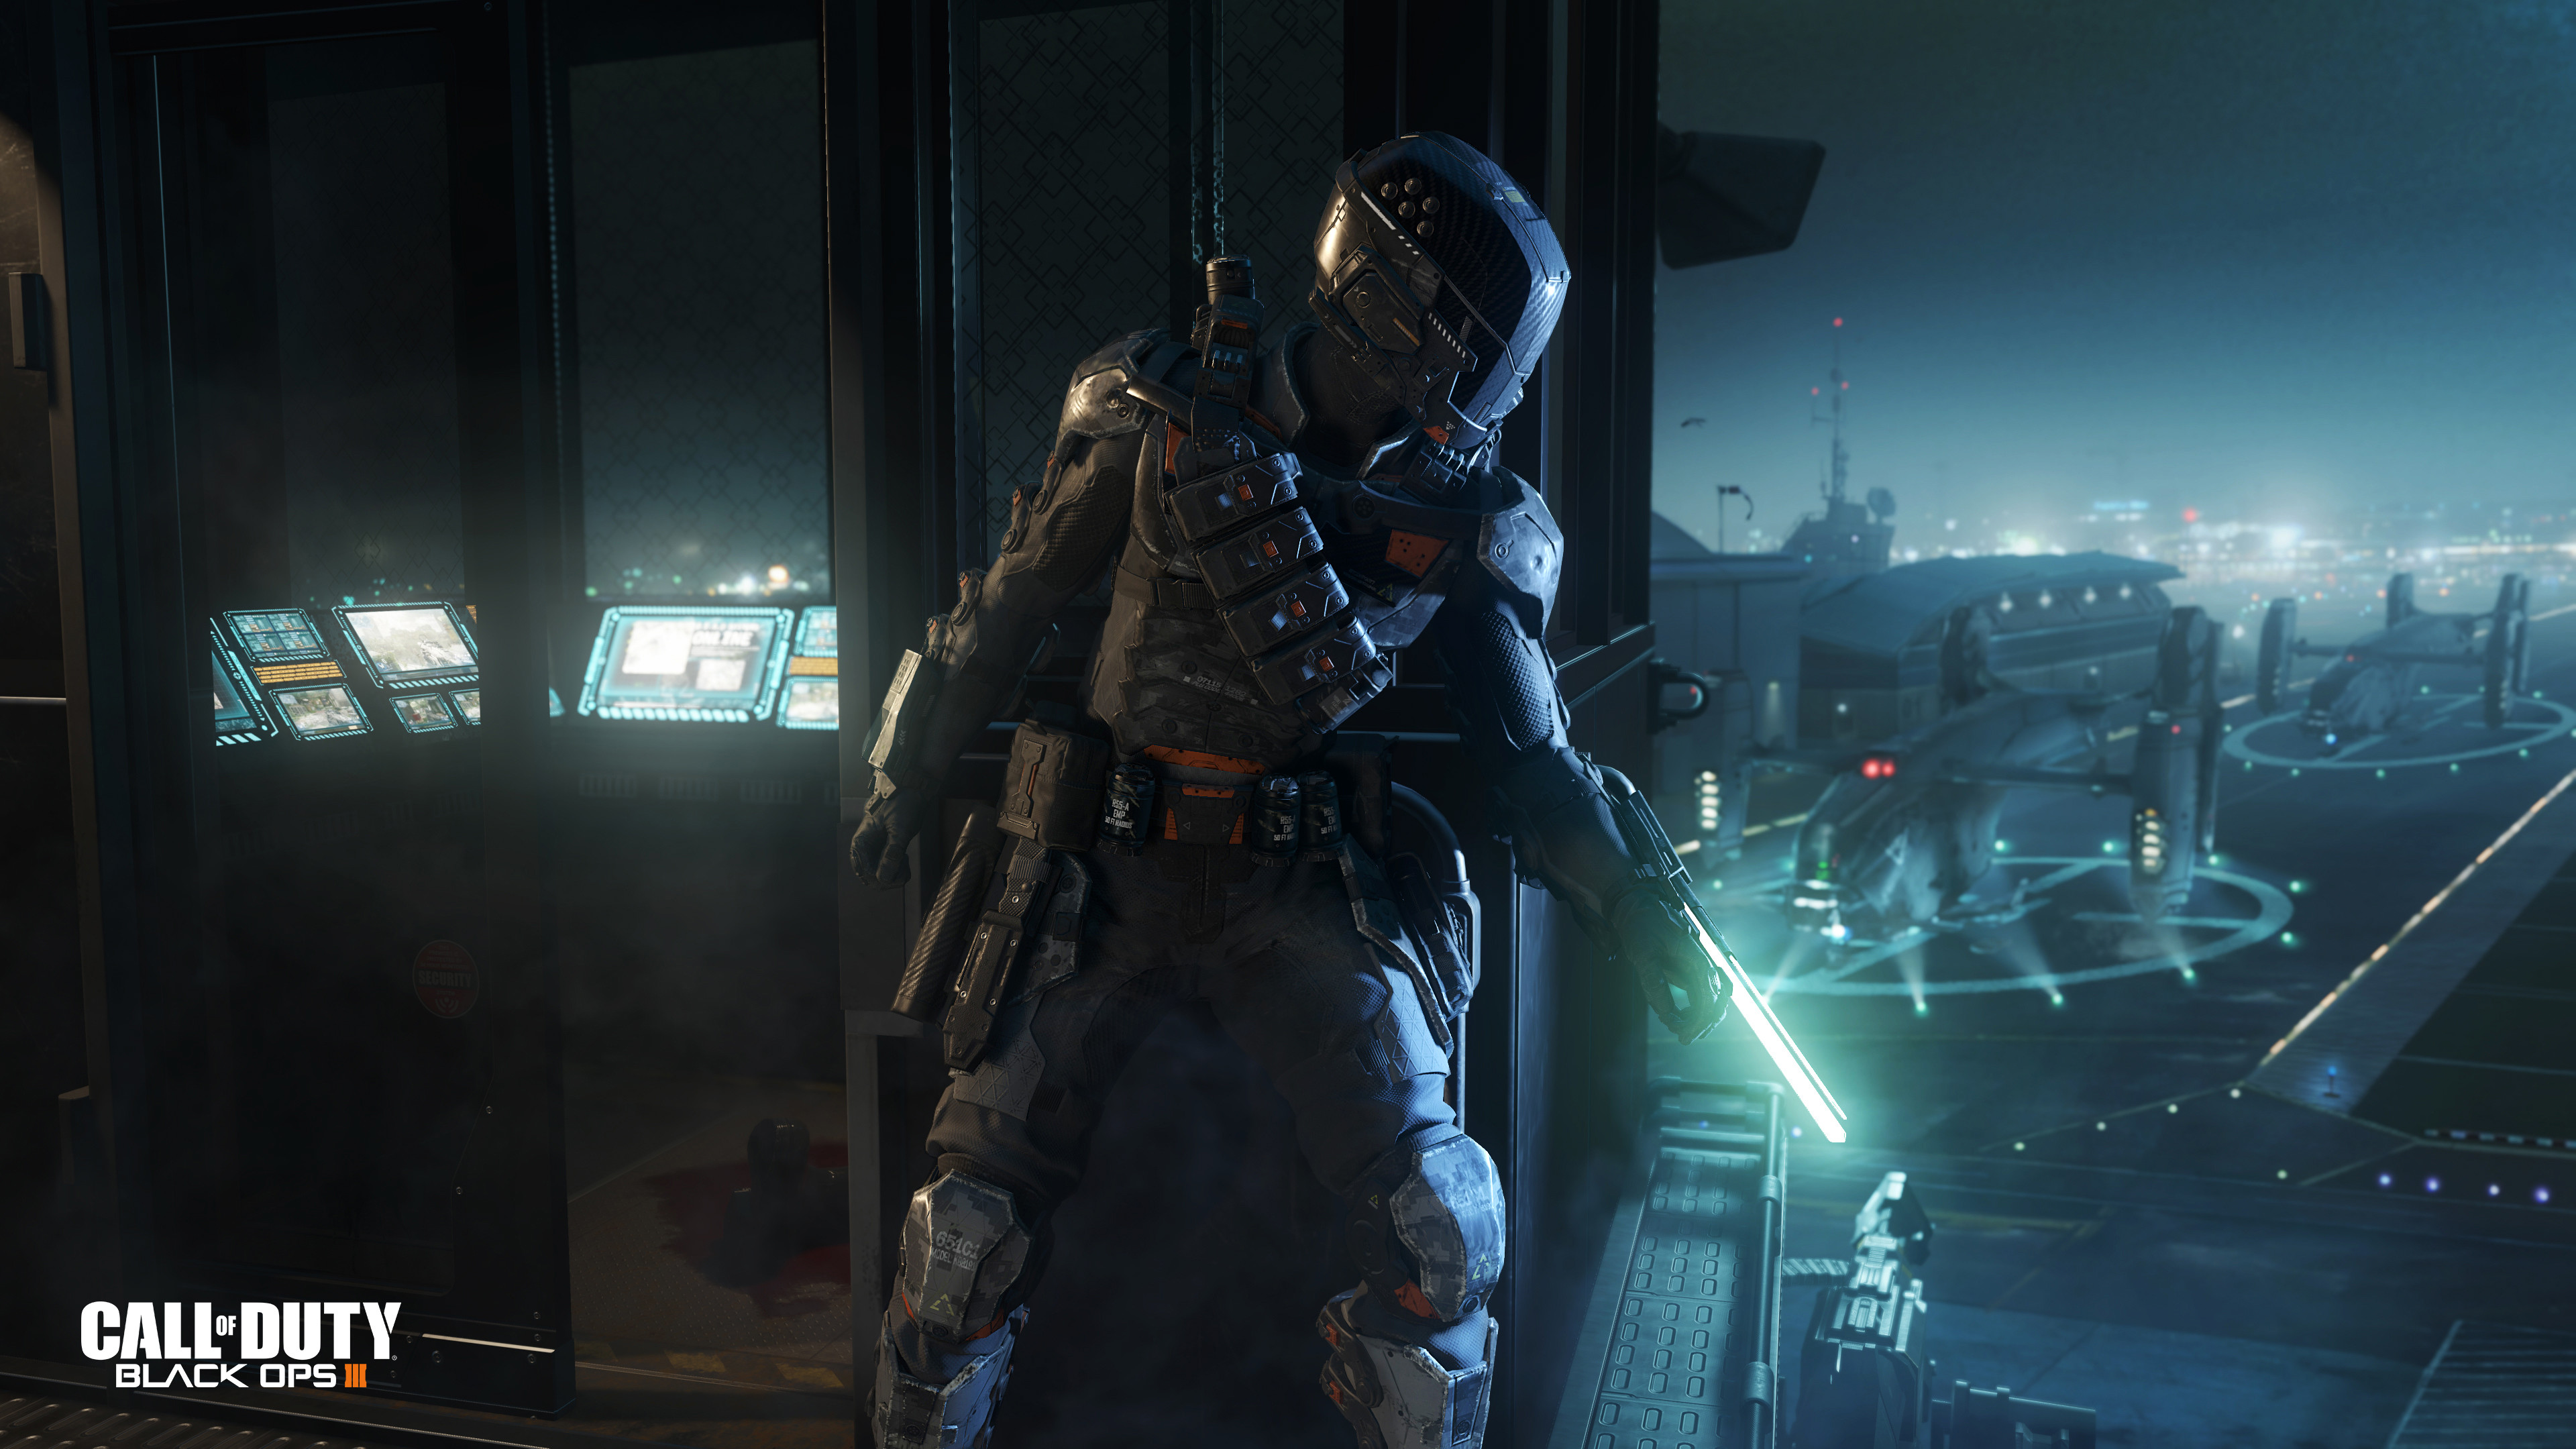 3840x2160 Call of Duty Black Ops 3 Spectre